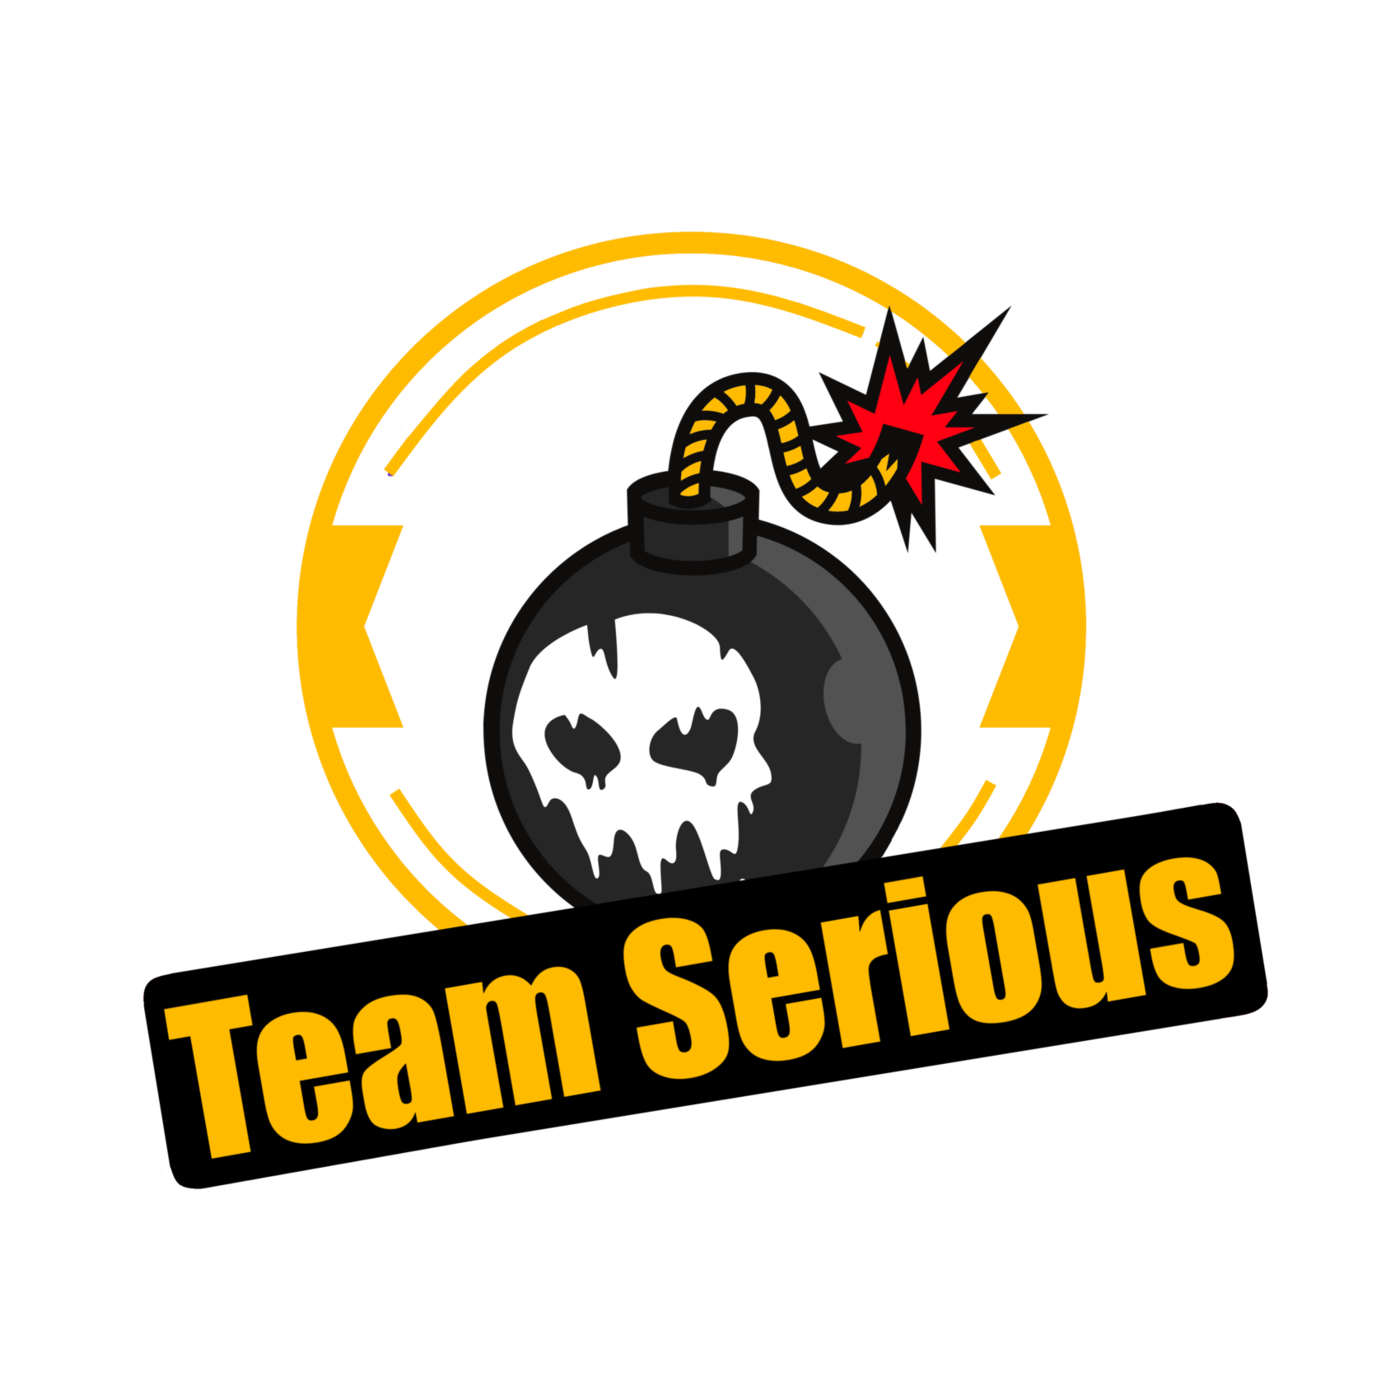 Team Serious DFW Talks - Weekend Edition with Serious Ladies